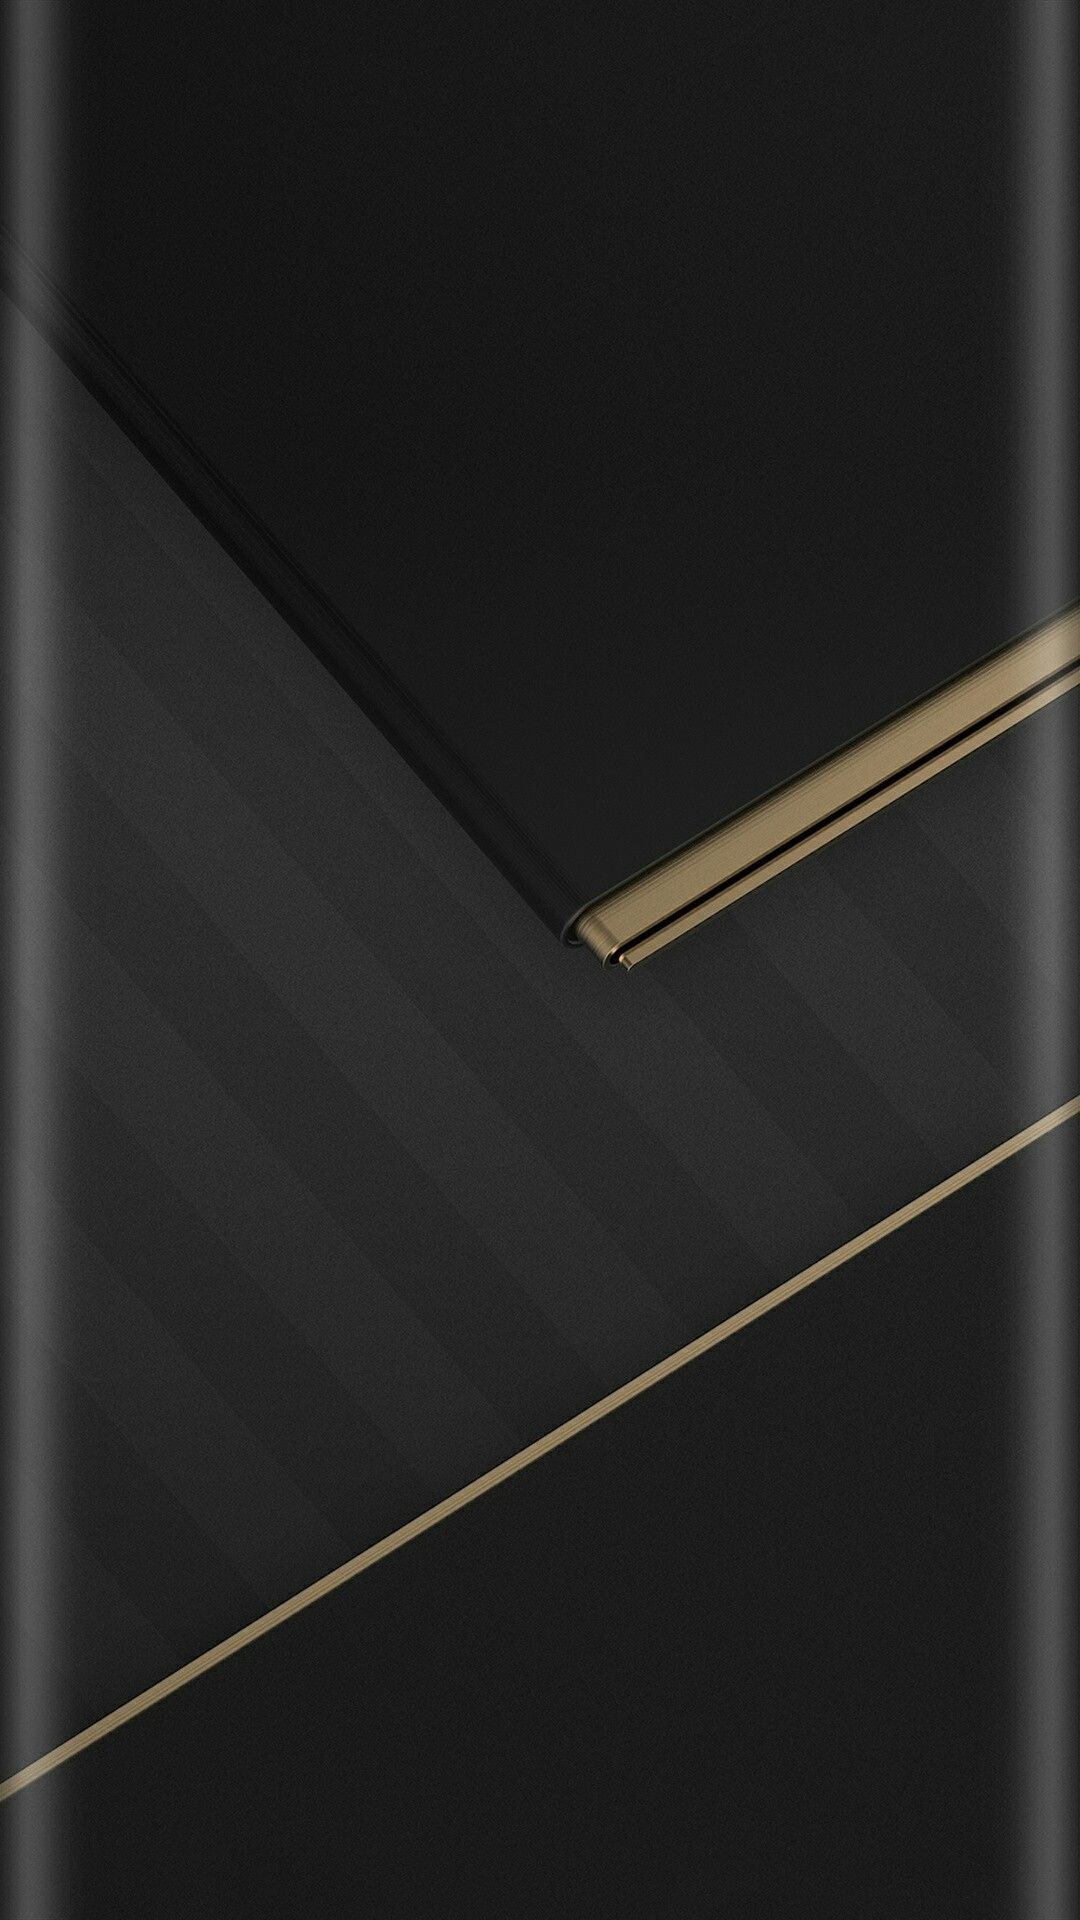 Grey Stripes Black and Gold Wallpaper Kertas dinding